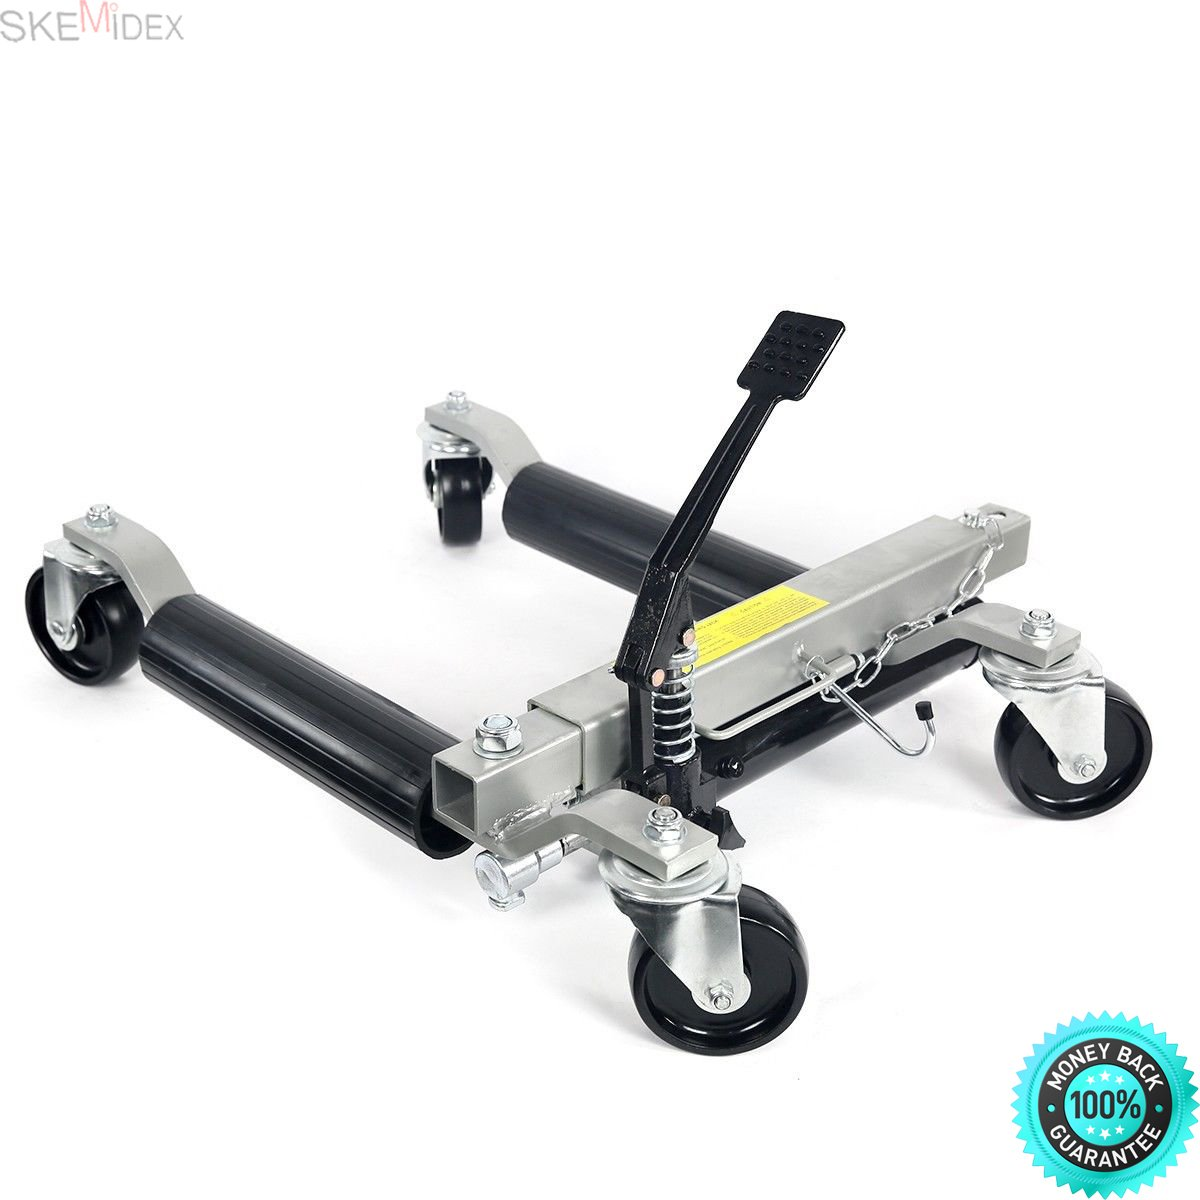 SKEMIDEX---2pc 1500lb HYDRAULIC Positioning Car Wheel Dolly Jack Lift hoists Moving Vehicle And moving dollies moving dolly lowes moving dolly rental walmart dolly hand truck costco hand truck by SKEMIDEX (Image #1)